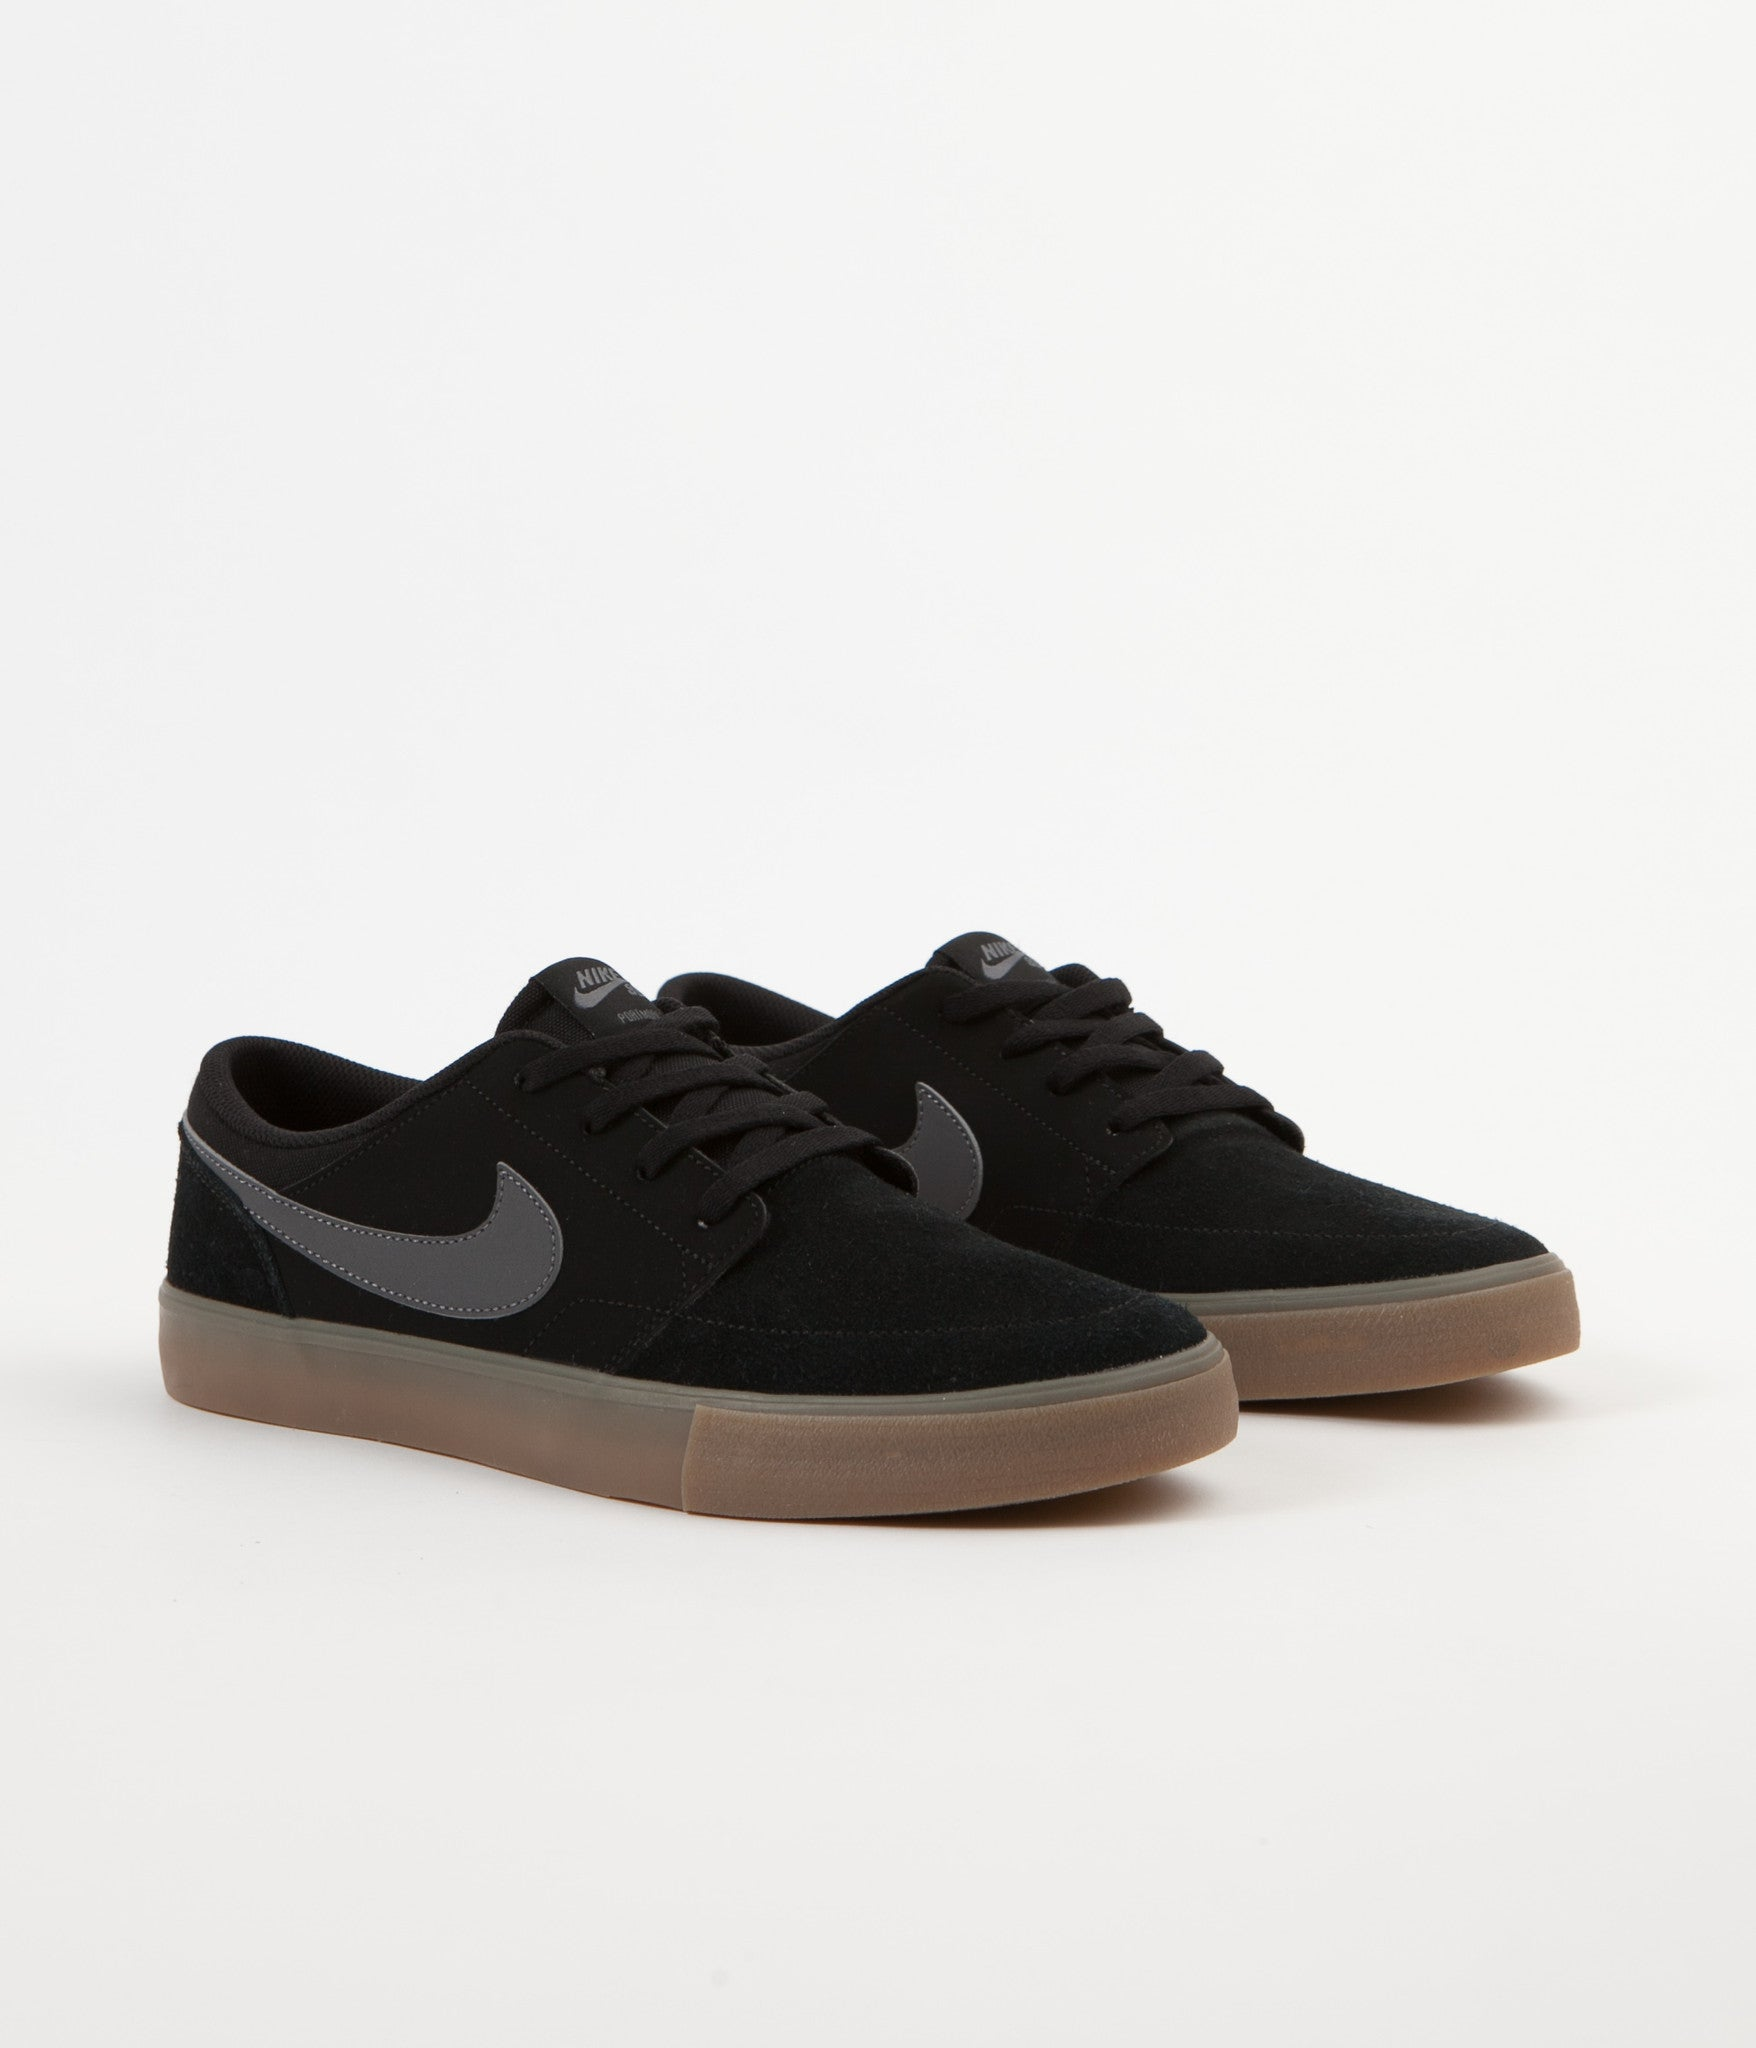 nike sb solarsoft portmore ii shoes black dark grey gum light br flatspot. Black Bedroom Furniture Sets. Home Design Ideas